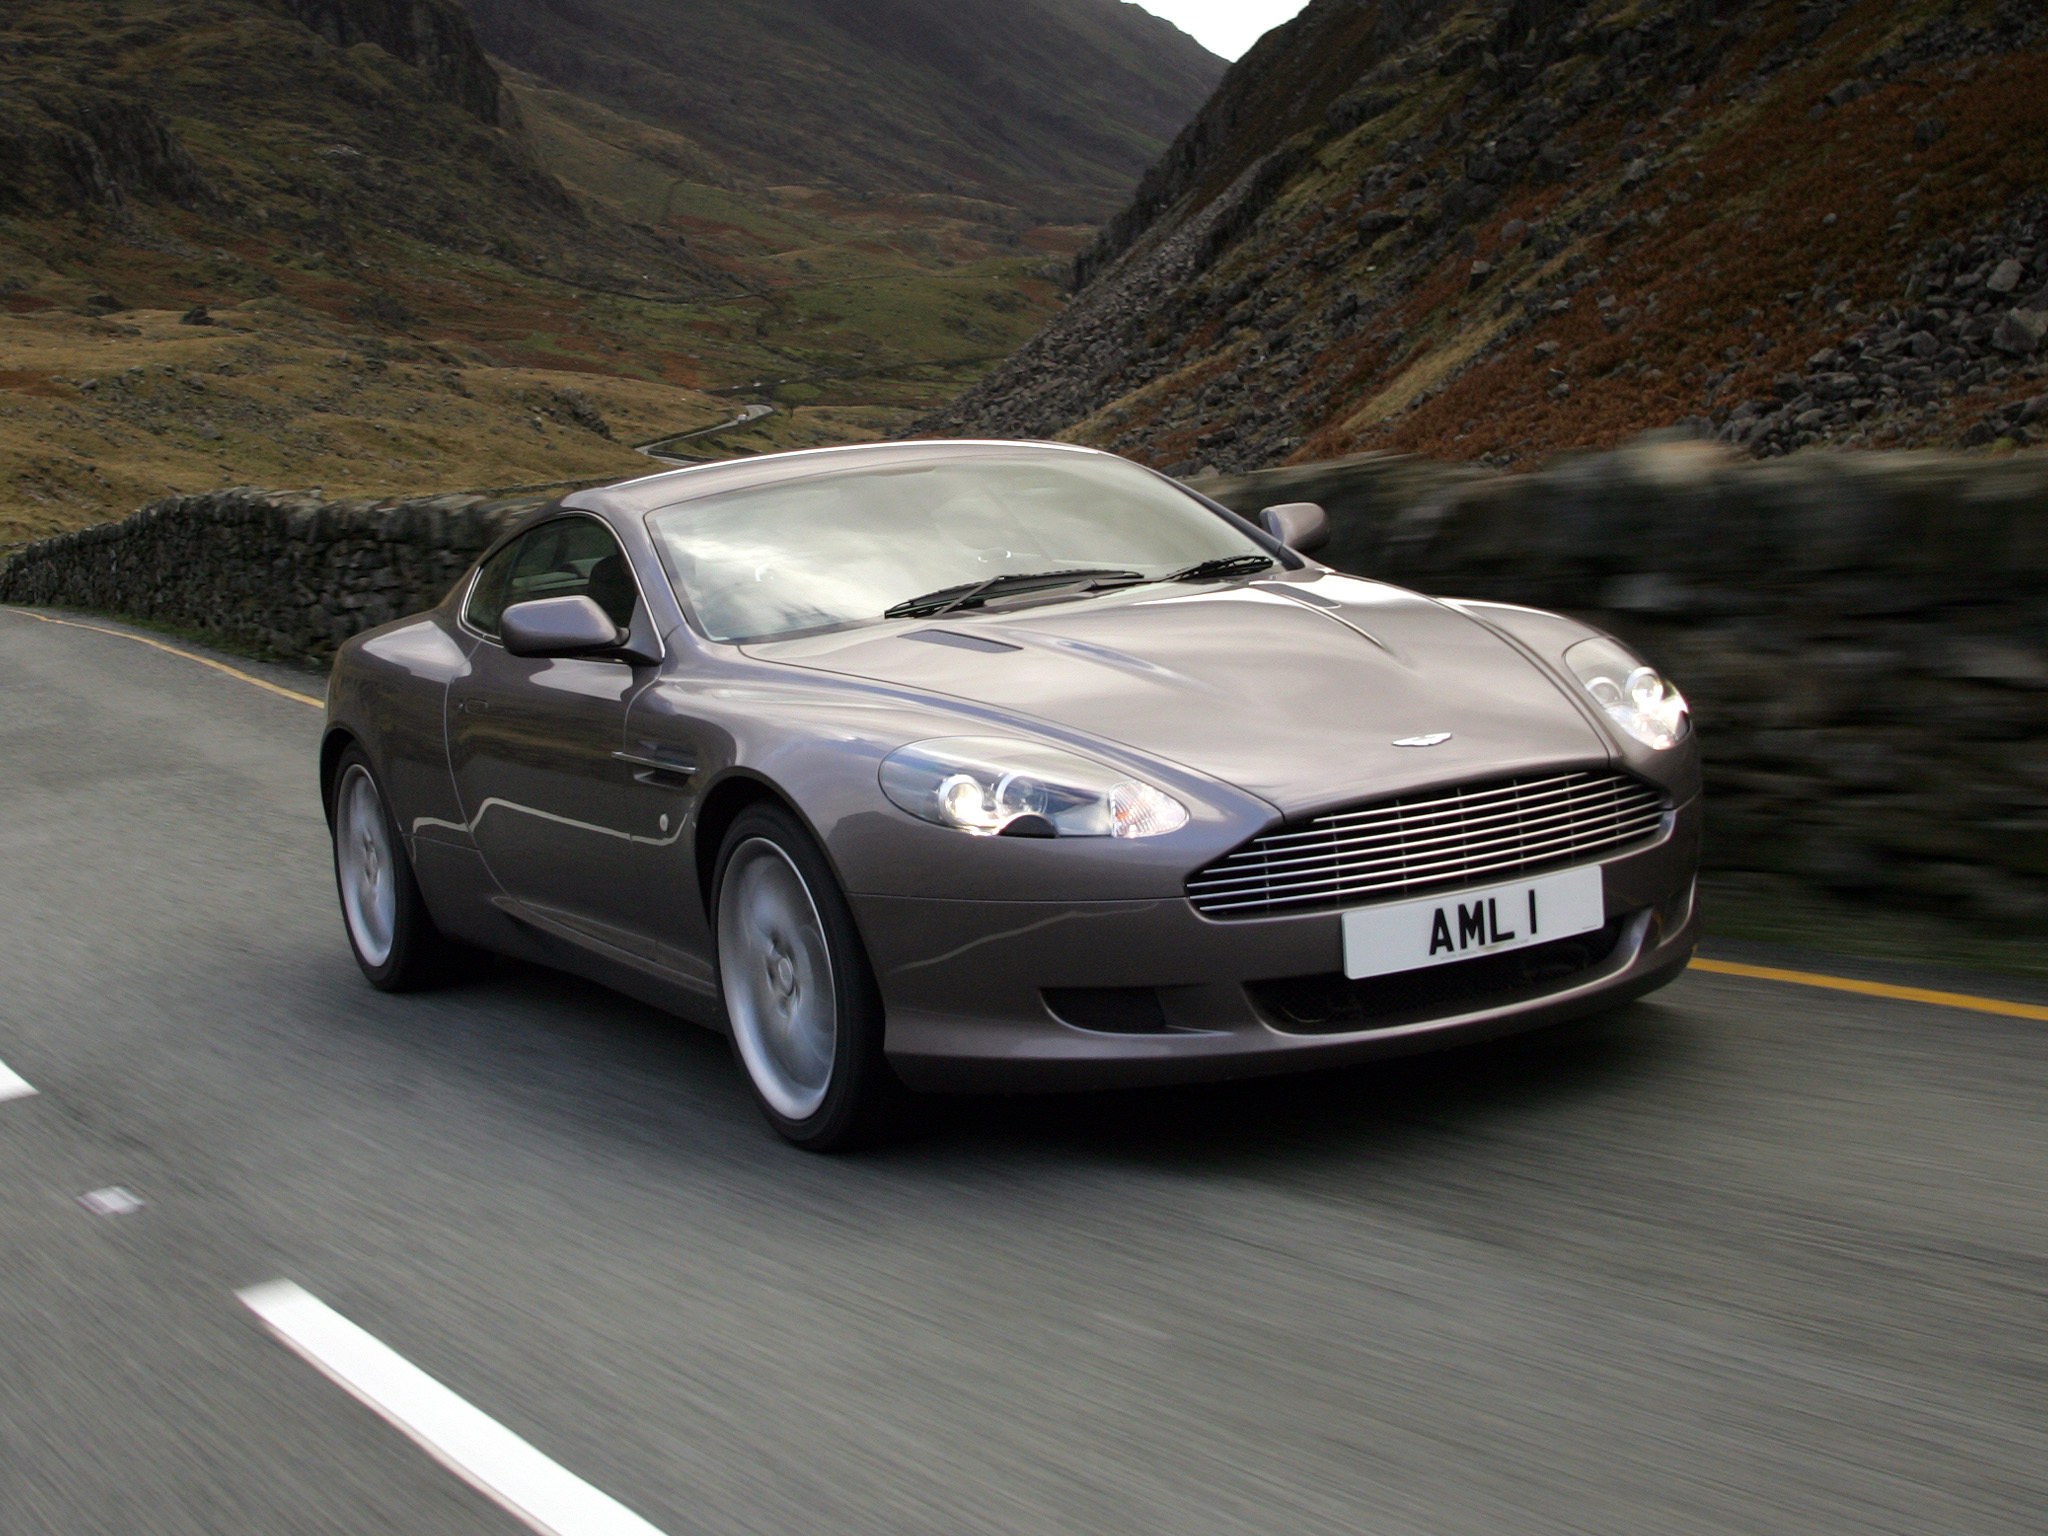 Aston Martin DB9 Wallpapers Car wallpapers HD 2048x1536